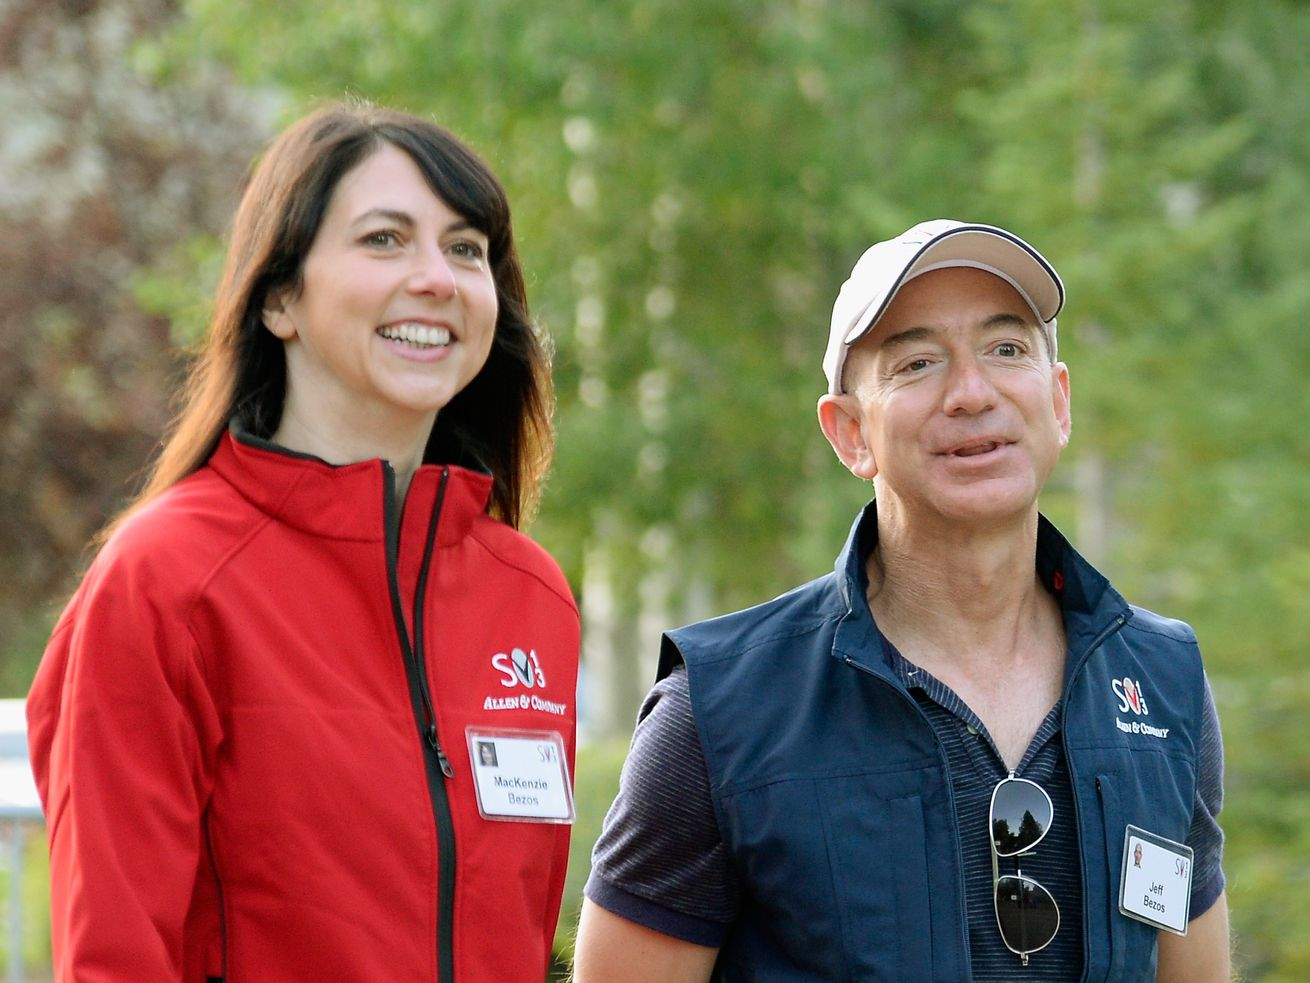 MacKenzie Bezos is now one of the wealthiest women in the world.